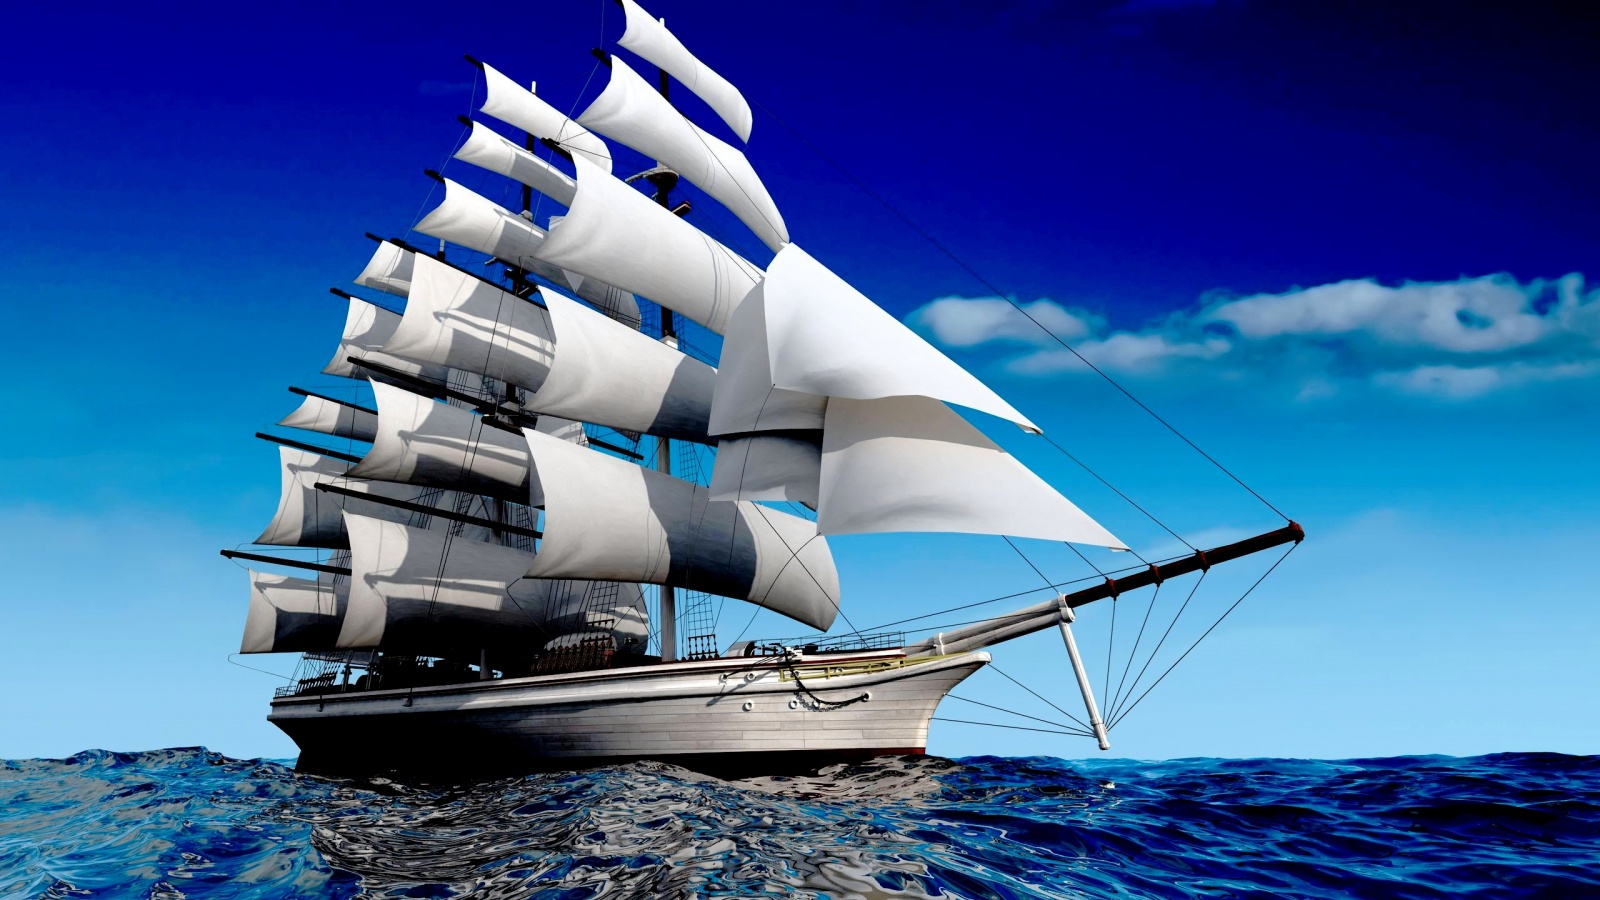 desktop wallpapers boats and - photo #40